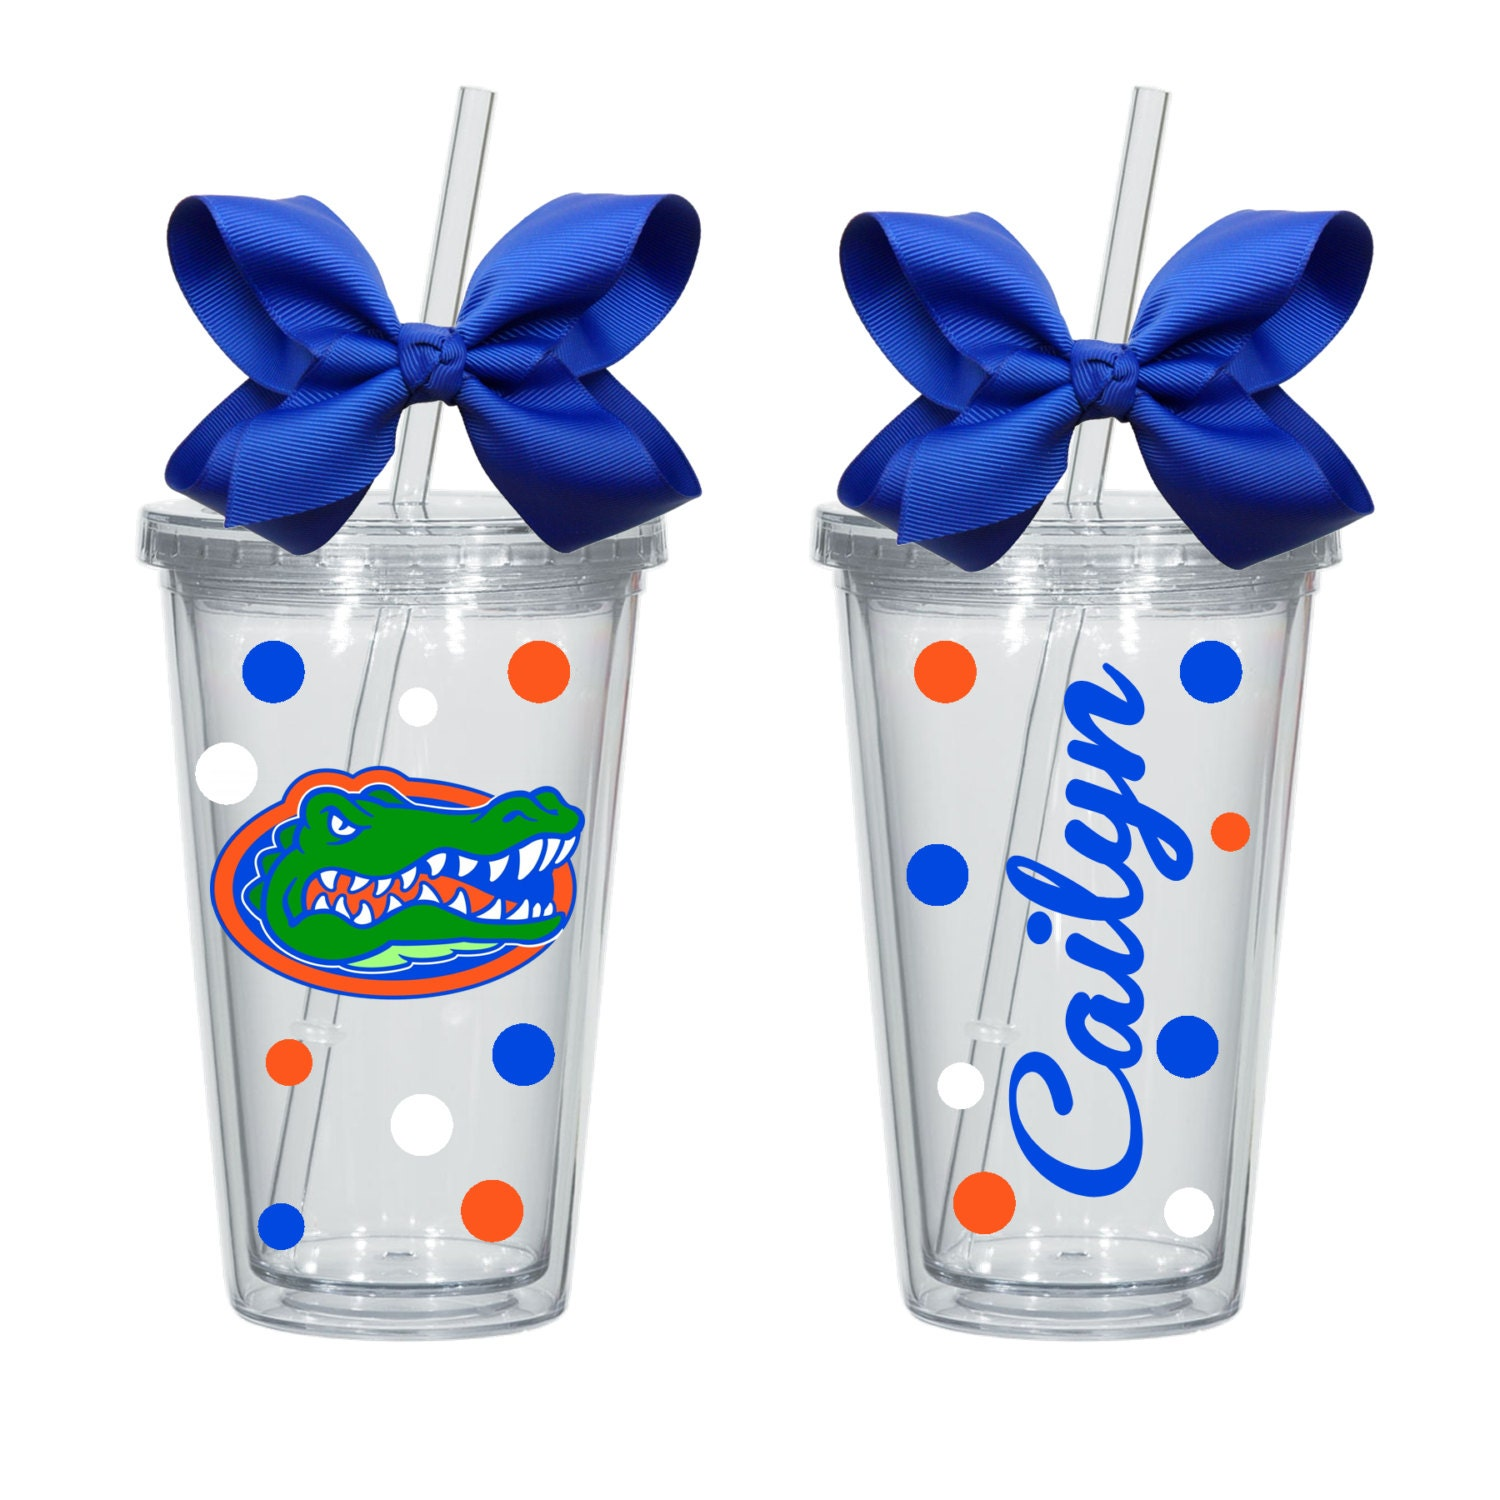 Florida Gators Inspired 16oz Acrylic Tumbler